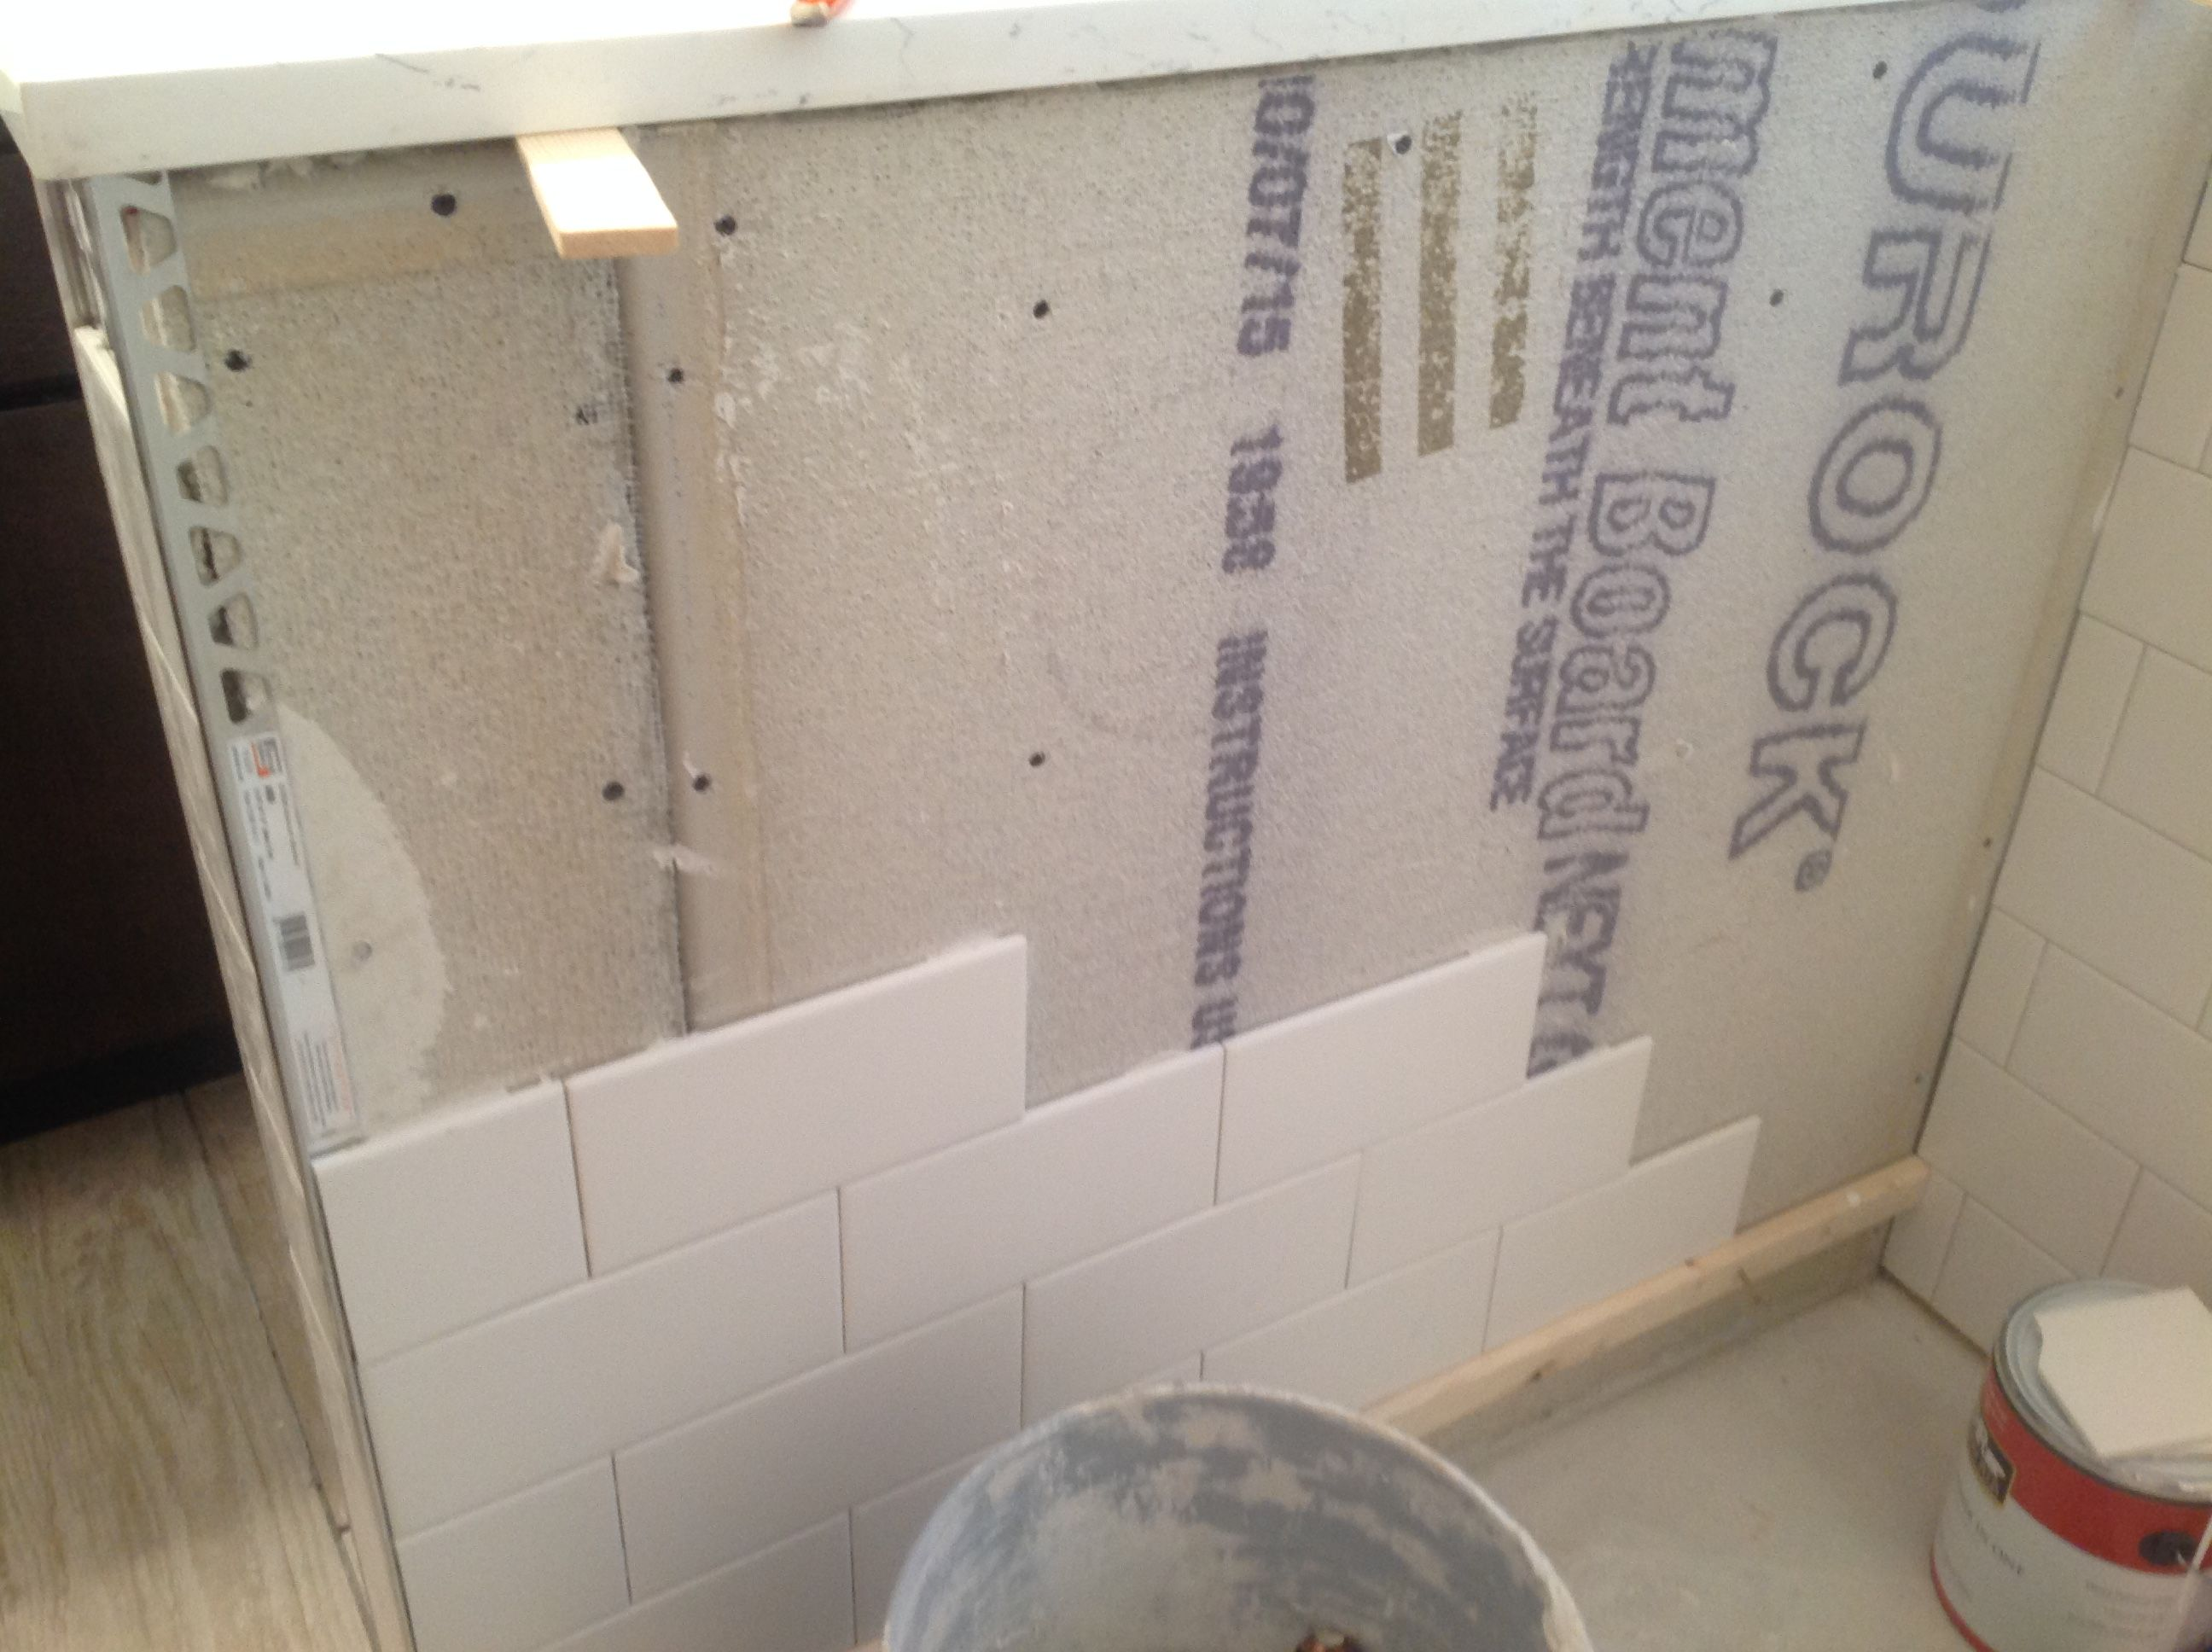 In progress subway tile s installed in a shower over Durock during a plete bathroom remodel in Chicago